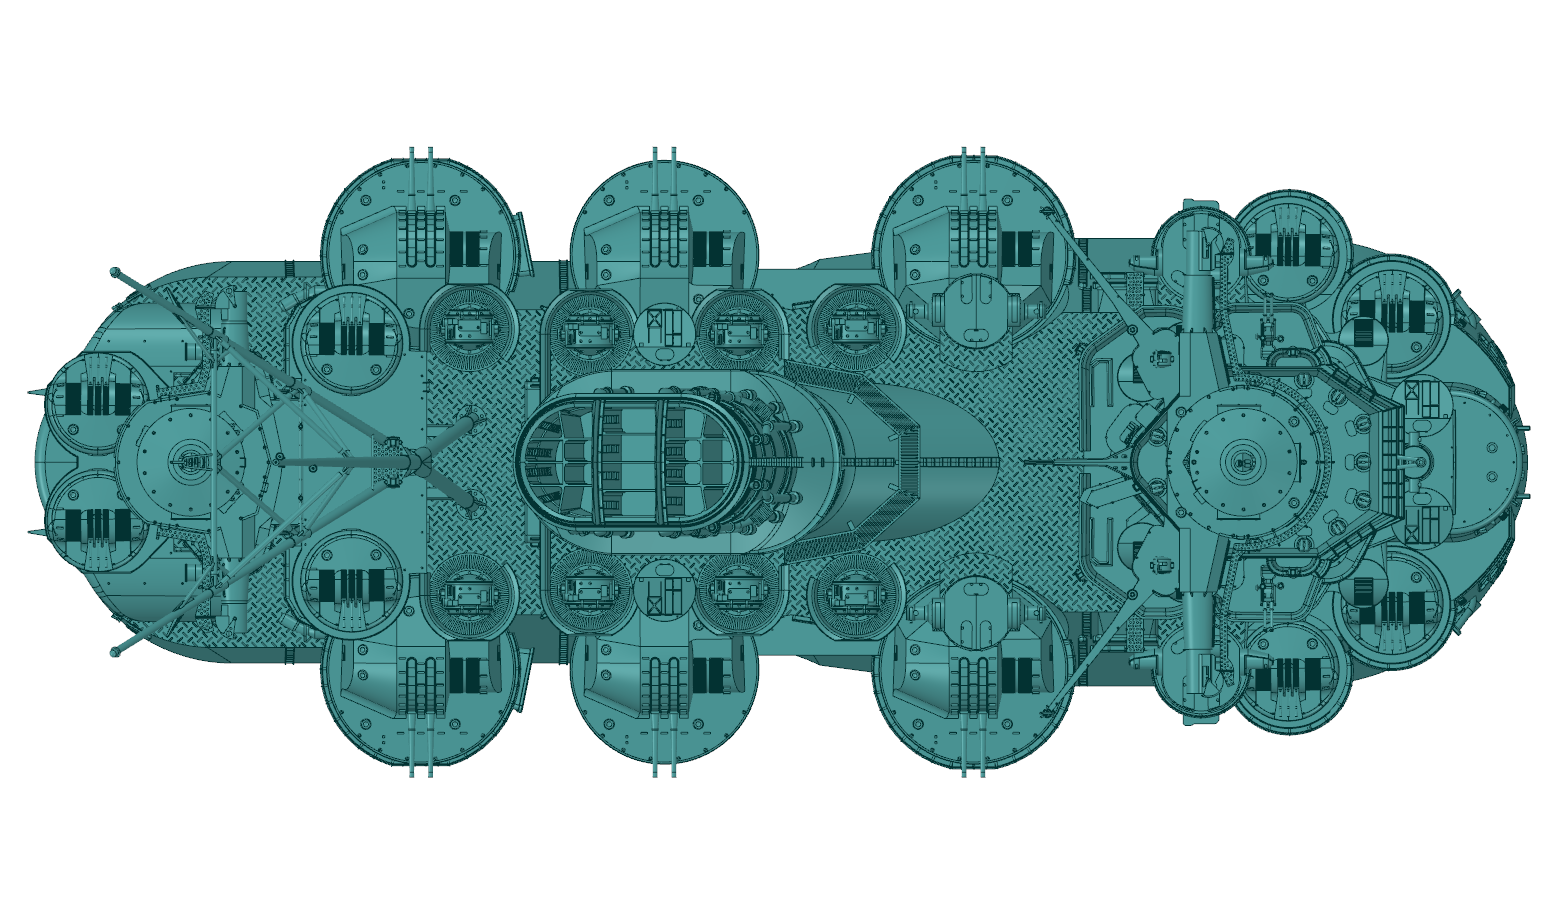 CAD Image of Yamato Battleship Model